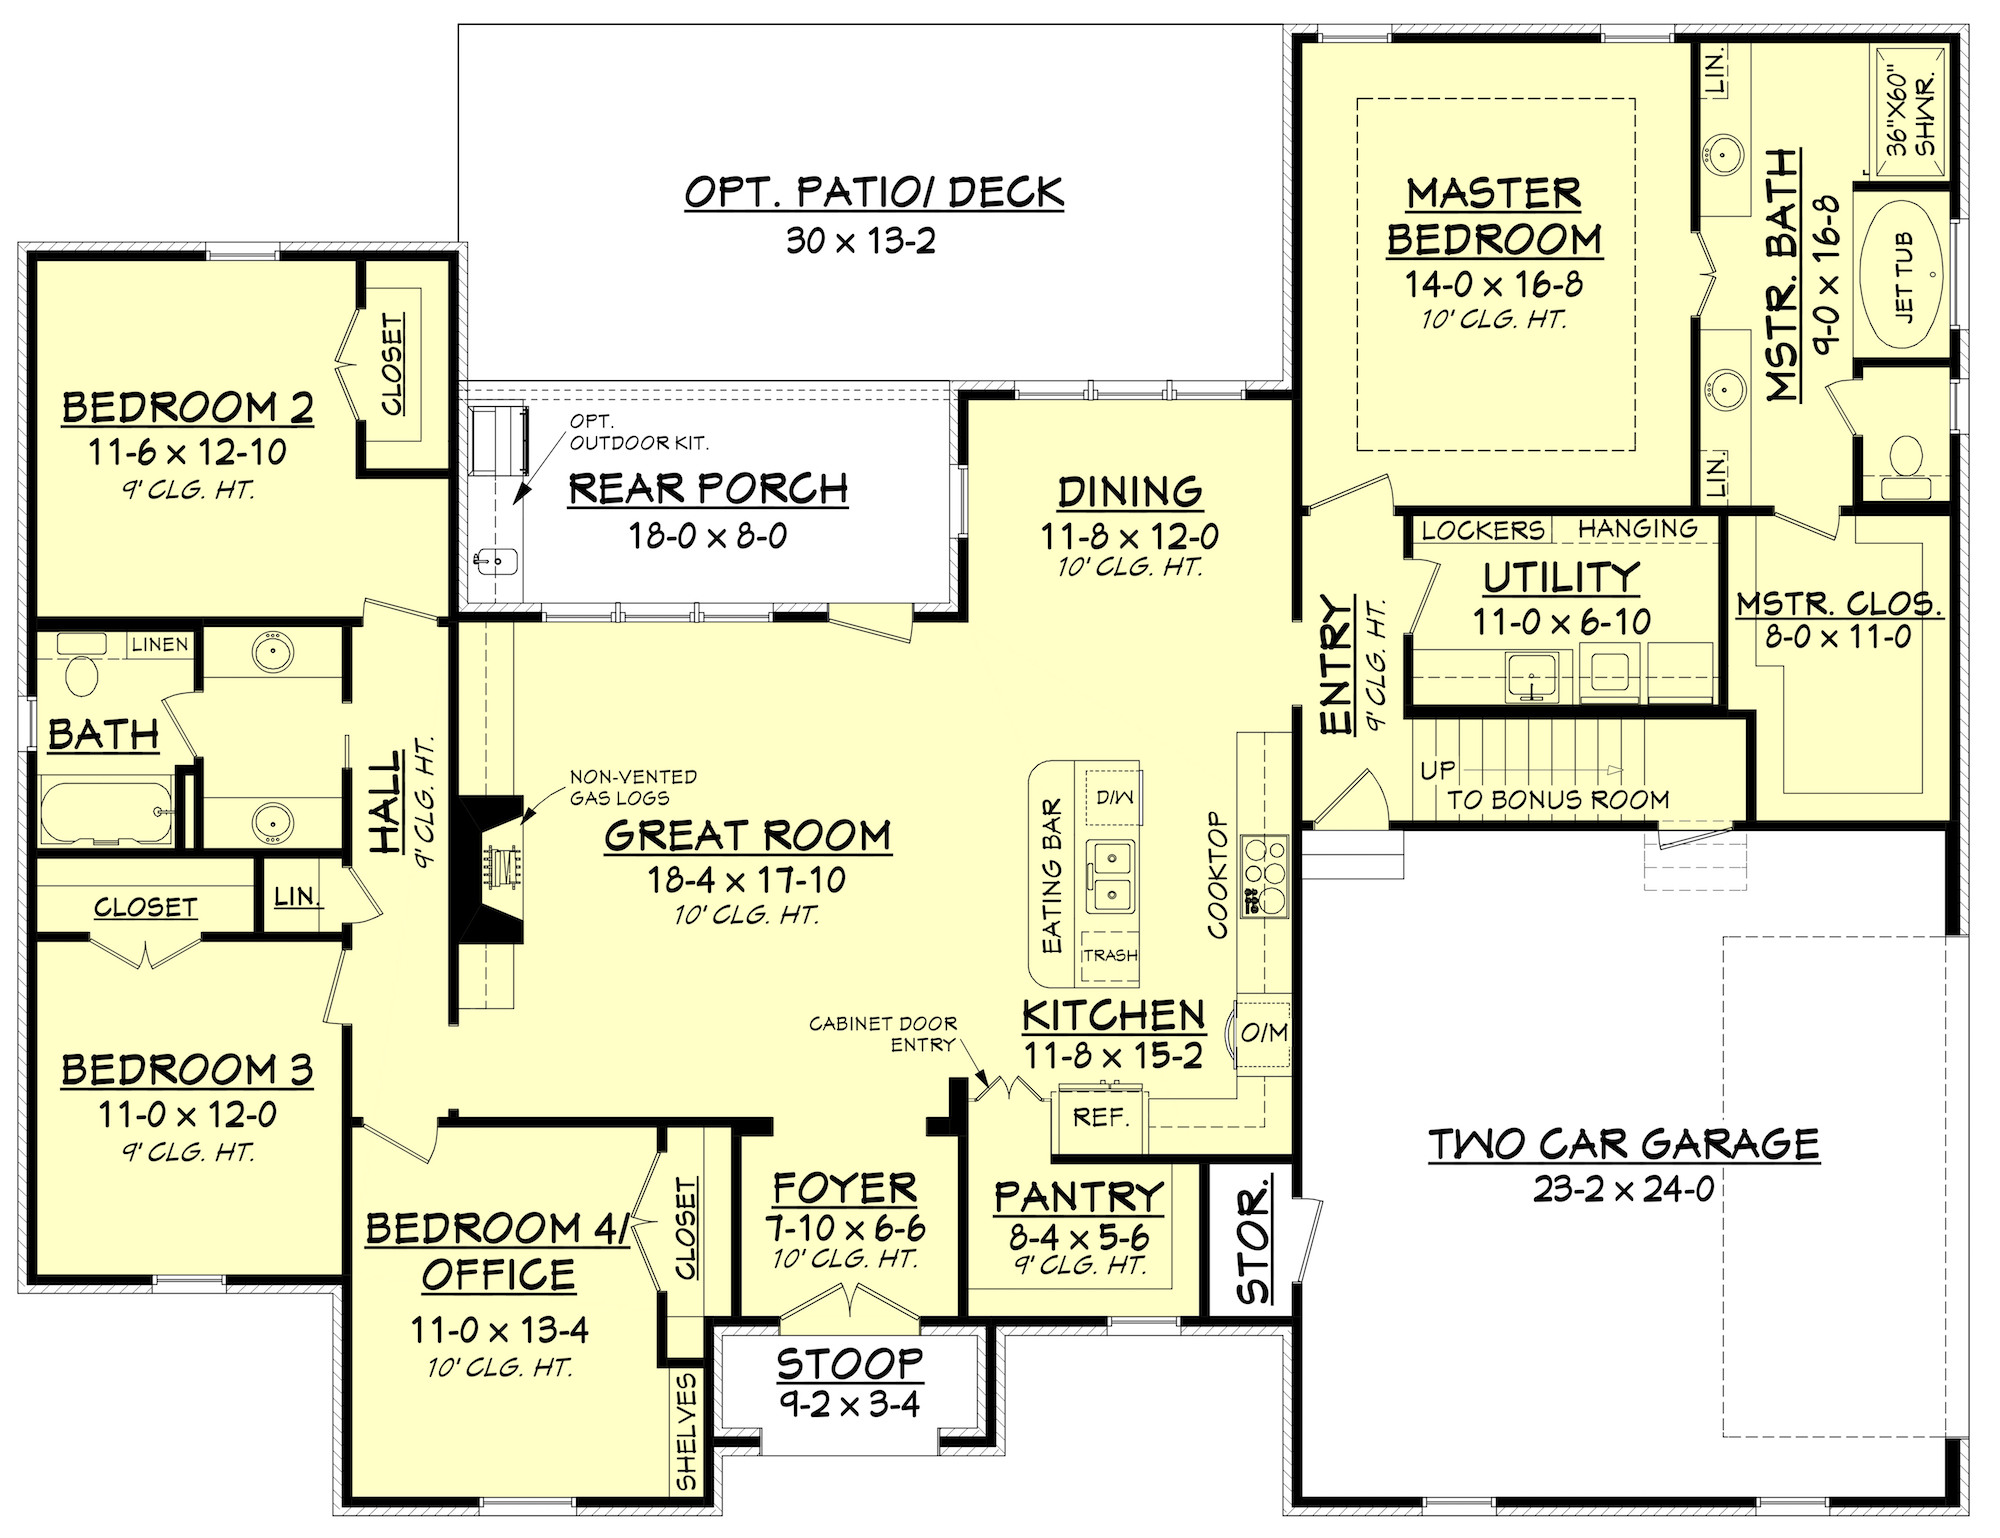 Acadian house plan 142 1154 4 bedrm 2210 sq ft home plan for House plans floor plans